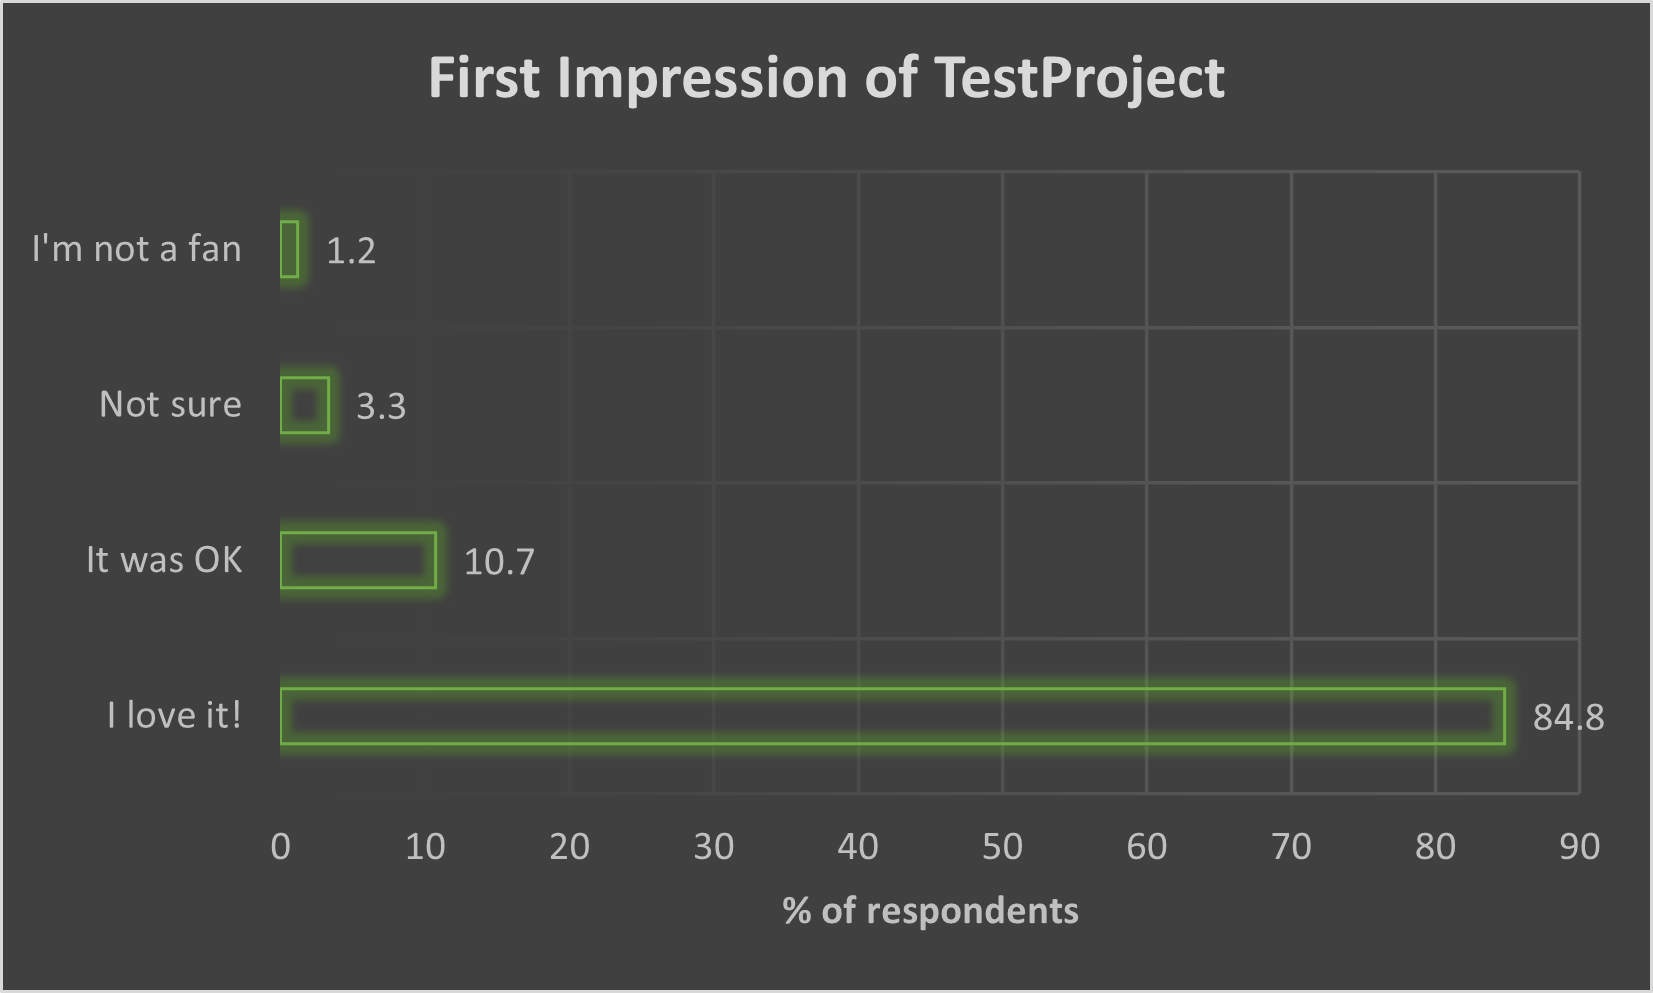 First Impression of TestProject